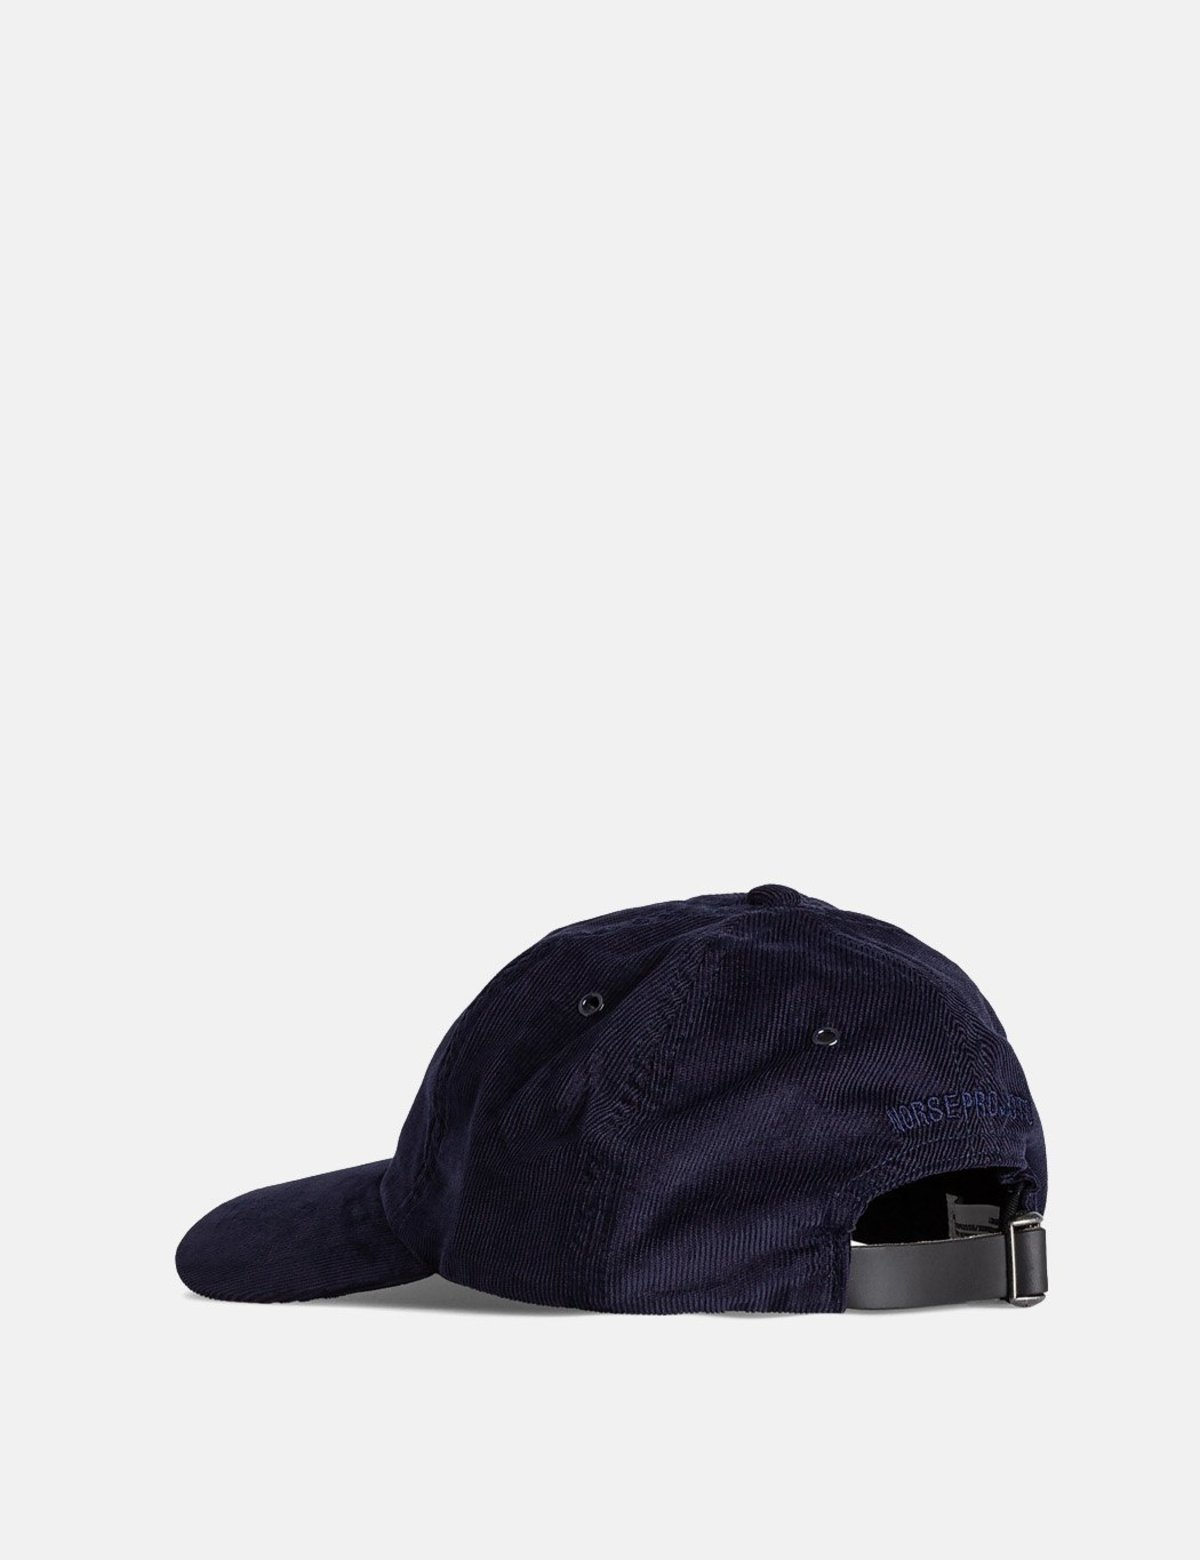 5afc8cffa4c Norse Projects Baby Corduroy Sports Cap - Dark Navy Blue